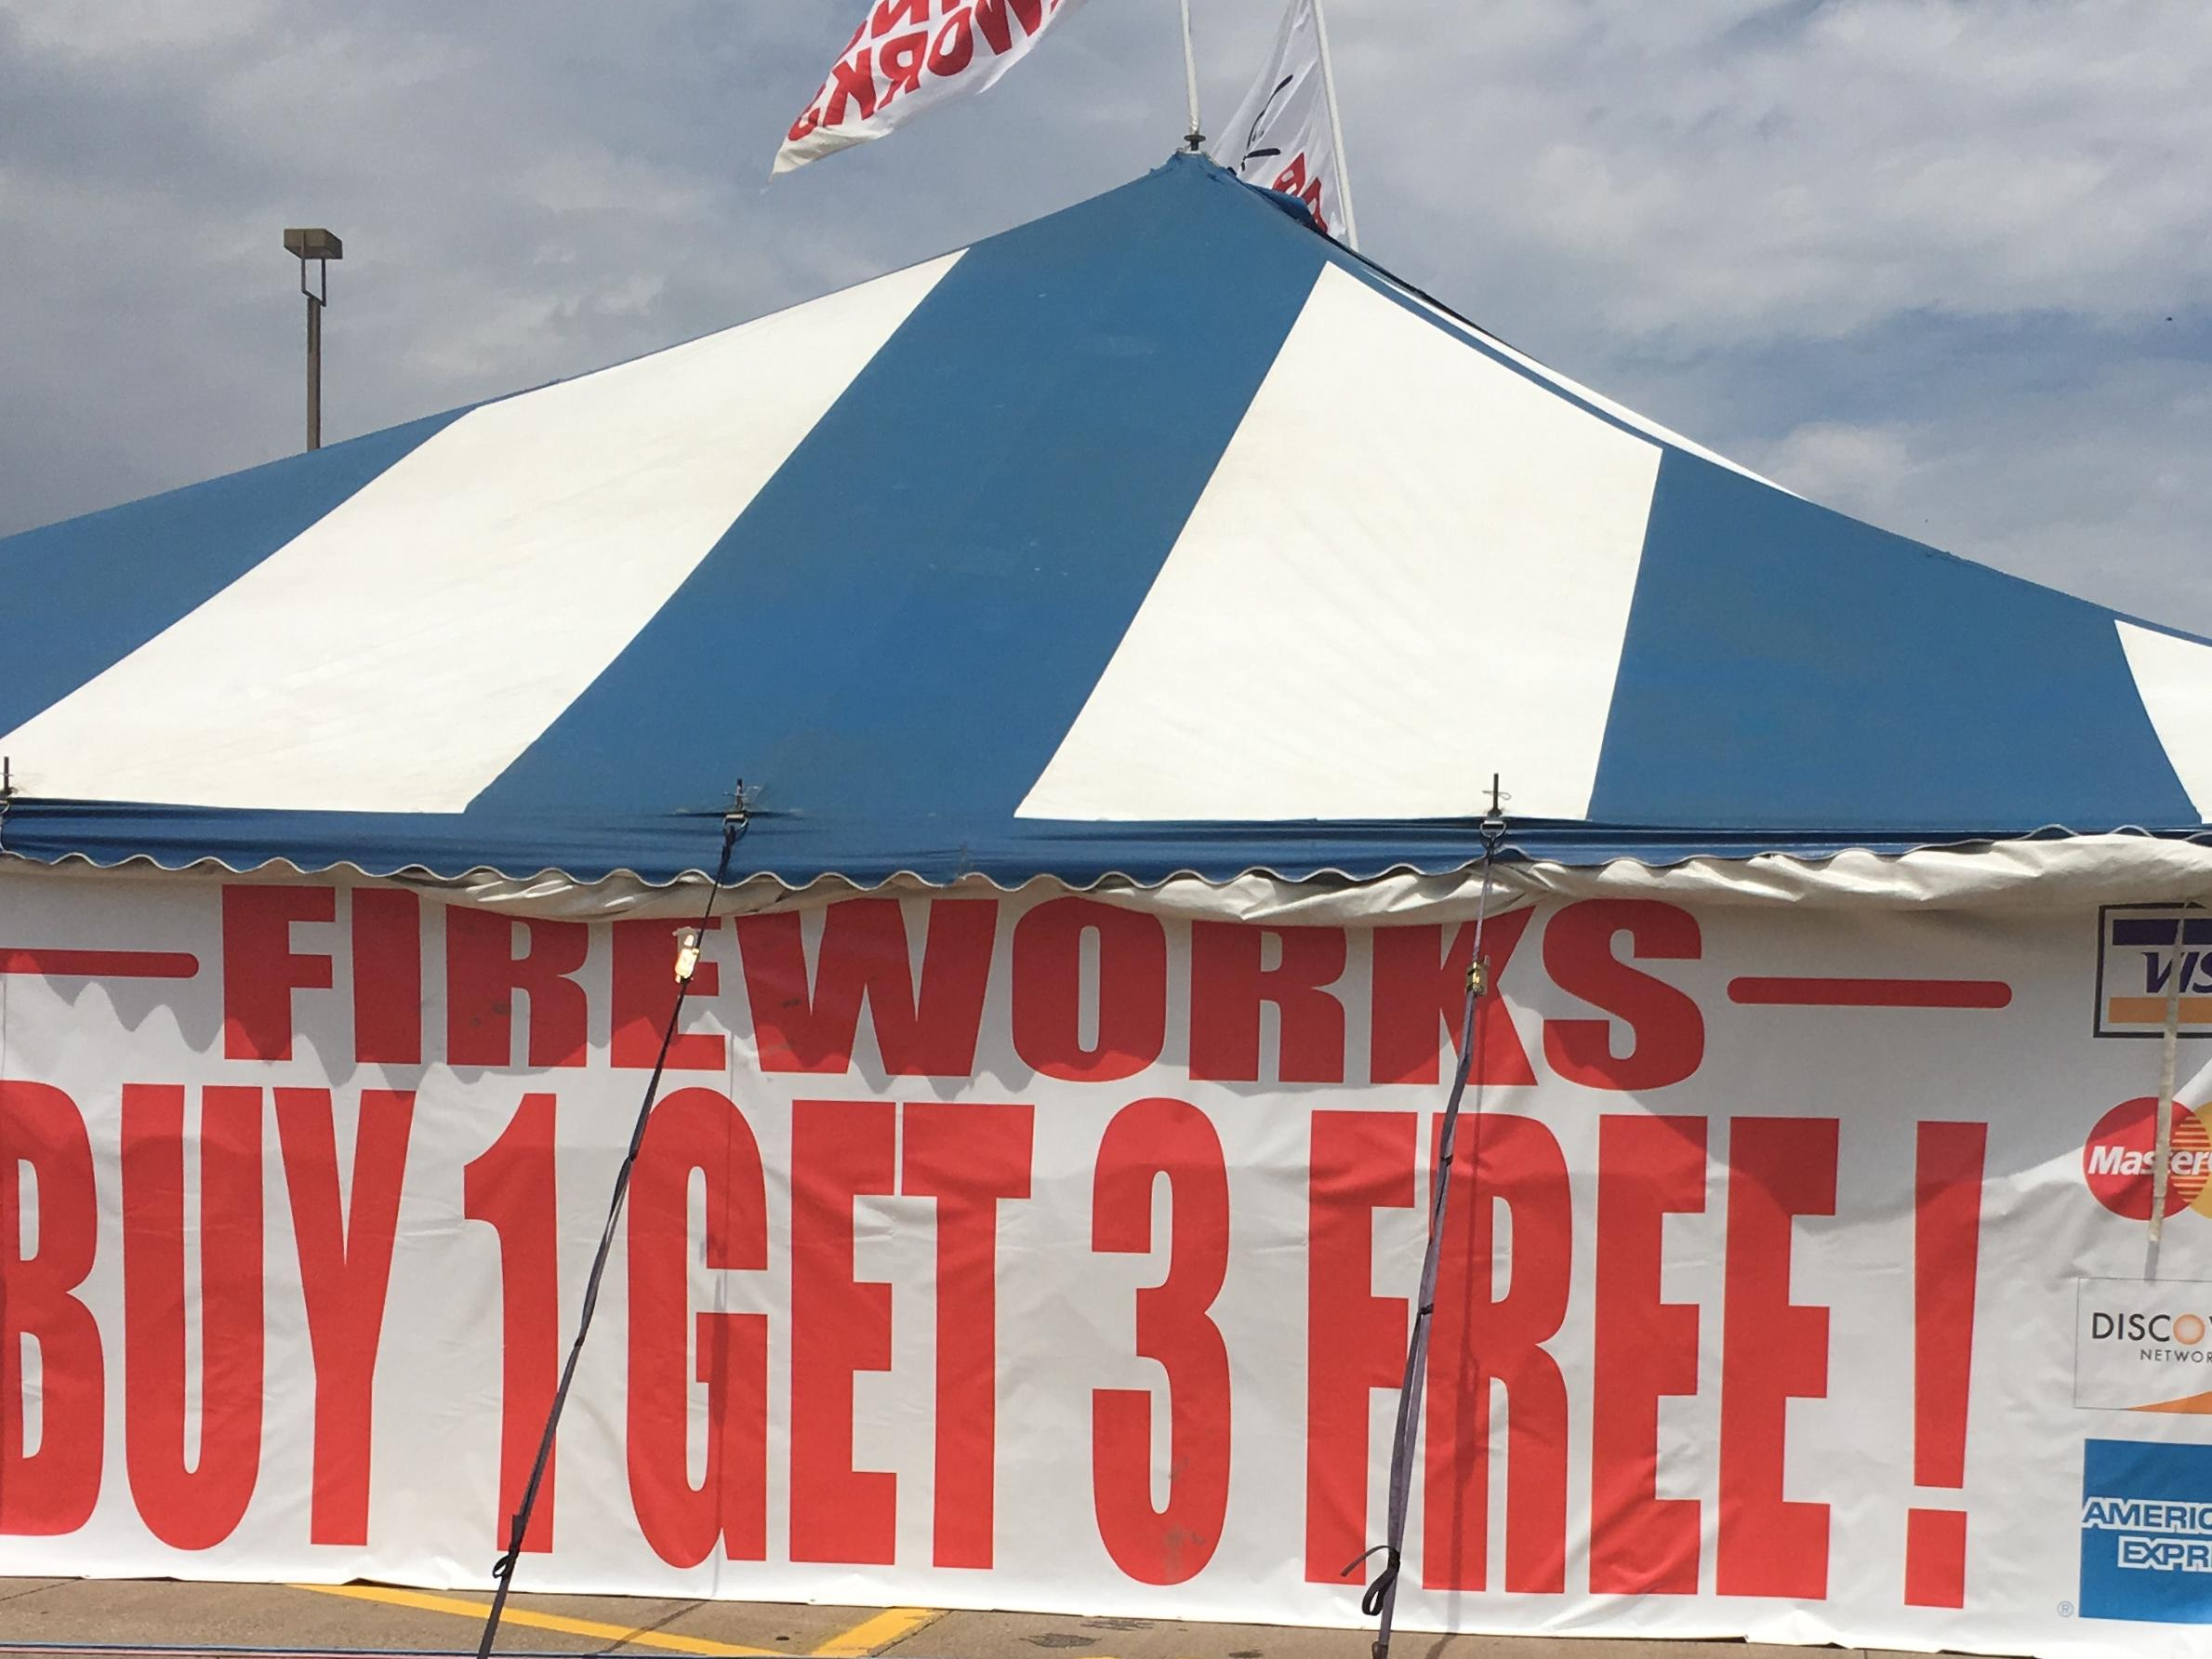 Heat Advisory in Siouxland, Fireworks Already Causing Trouble, Noon